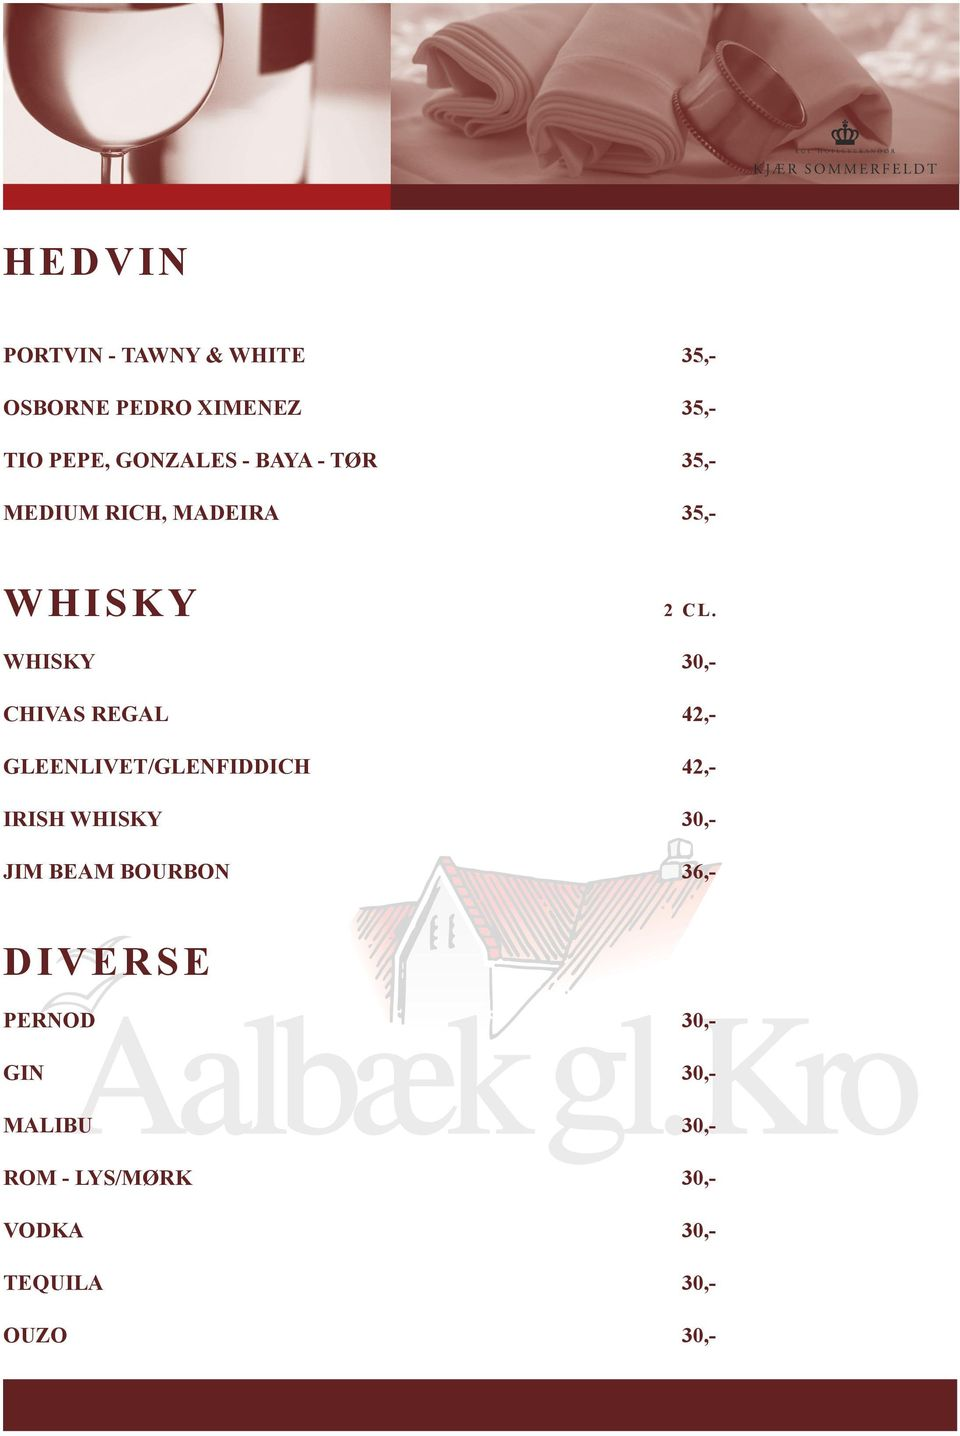 WHISKY 30,- CHIVAS REGAL 42,- GLEENLIVET/GLENFIDDICH 42,- IRISH WHISKY 30,- JIM